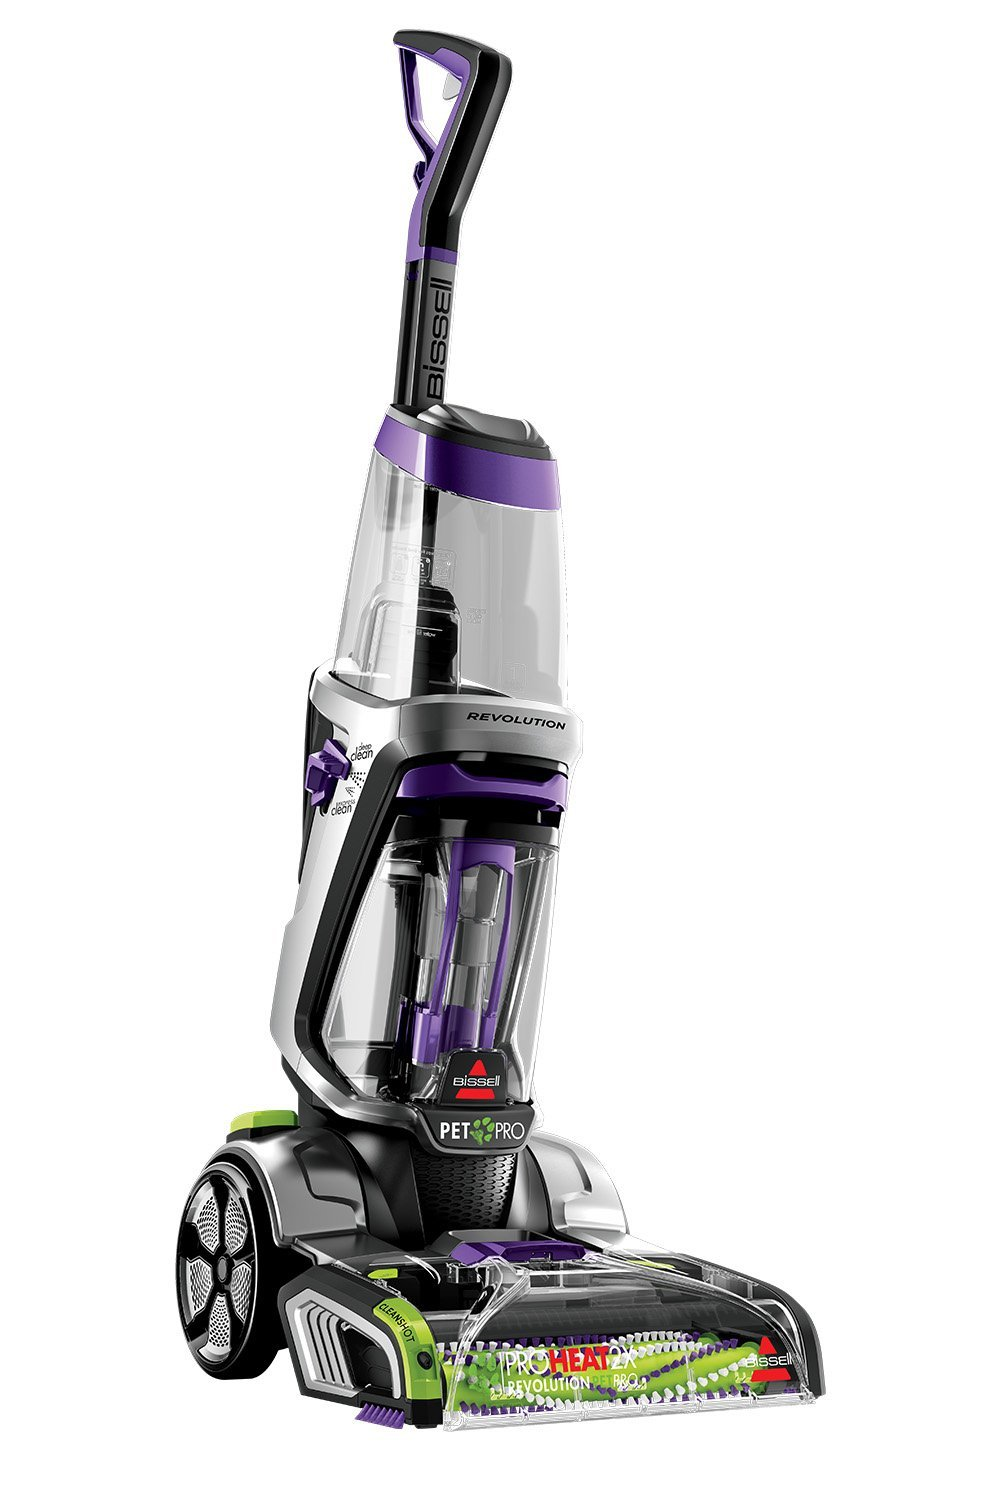 BISSELL ProHeat 2X Revolution Pet Pro Carpet Cleaner 20666: Amazon.co.uk:  Kitchen & Home